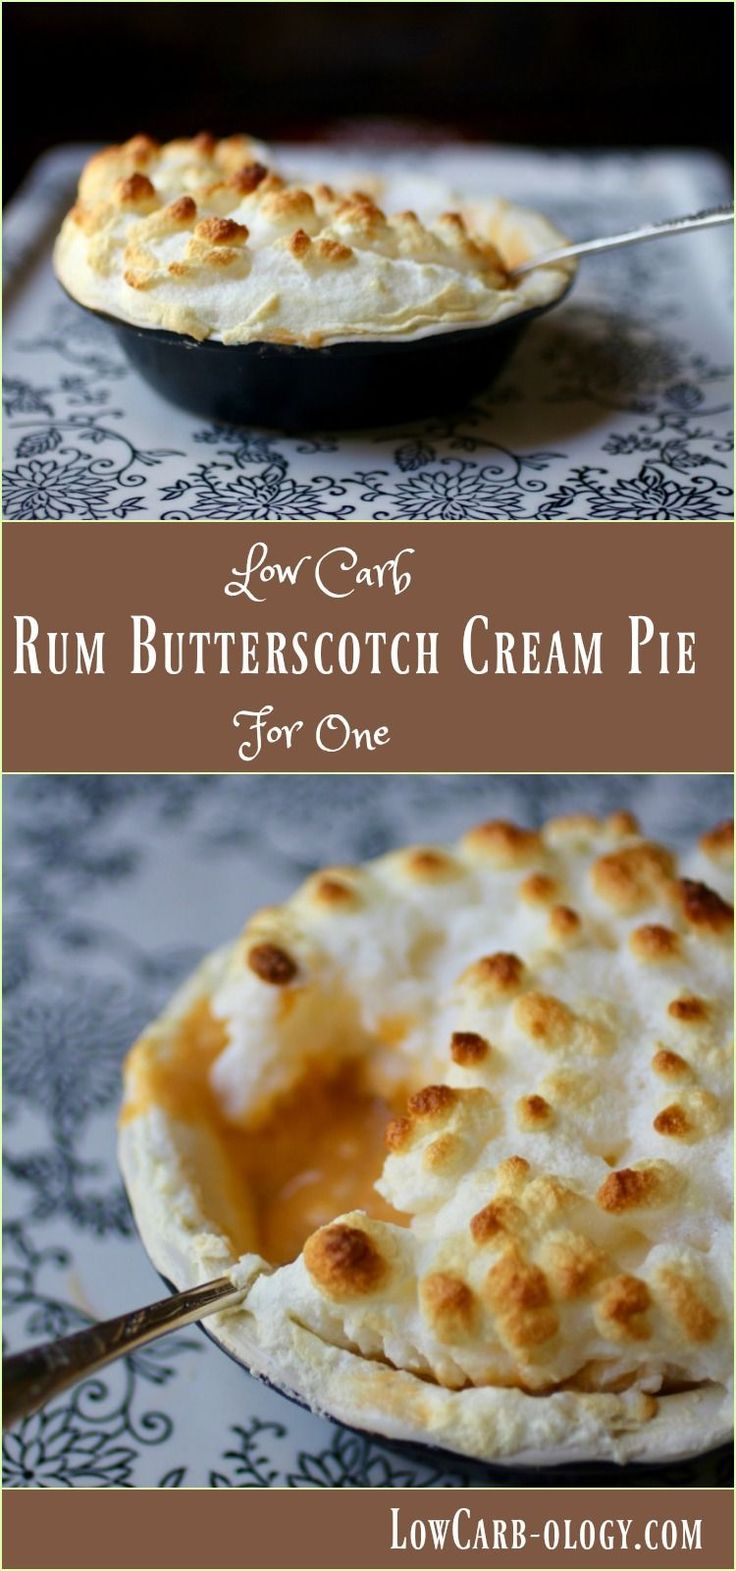 This Rum Butterscotch Cream Pie recipe is low carb and sugar free. It's so creamy - Atkins friendly with just over 3 net carbs. From Lowcarb-ology.com